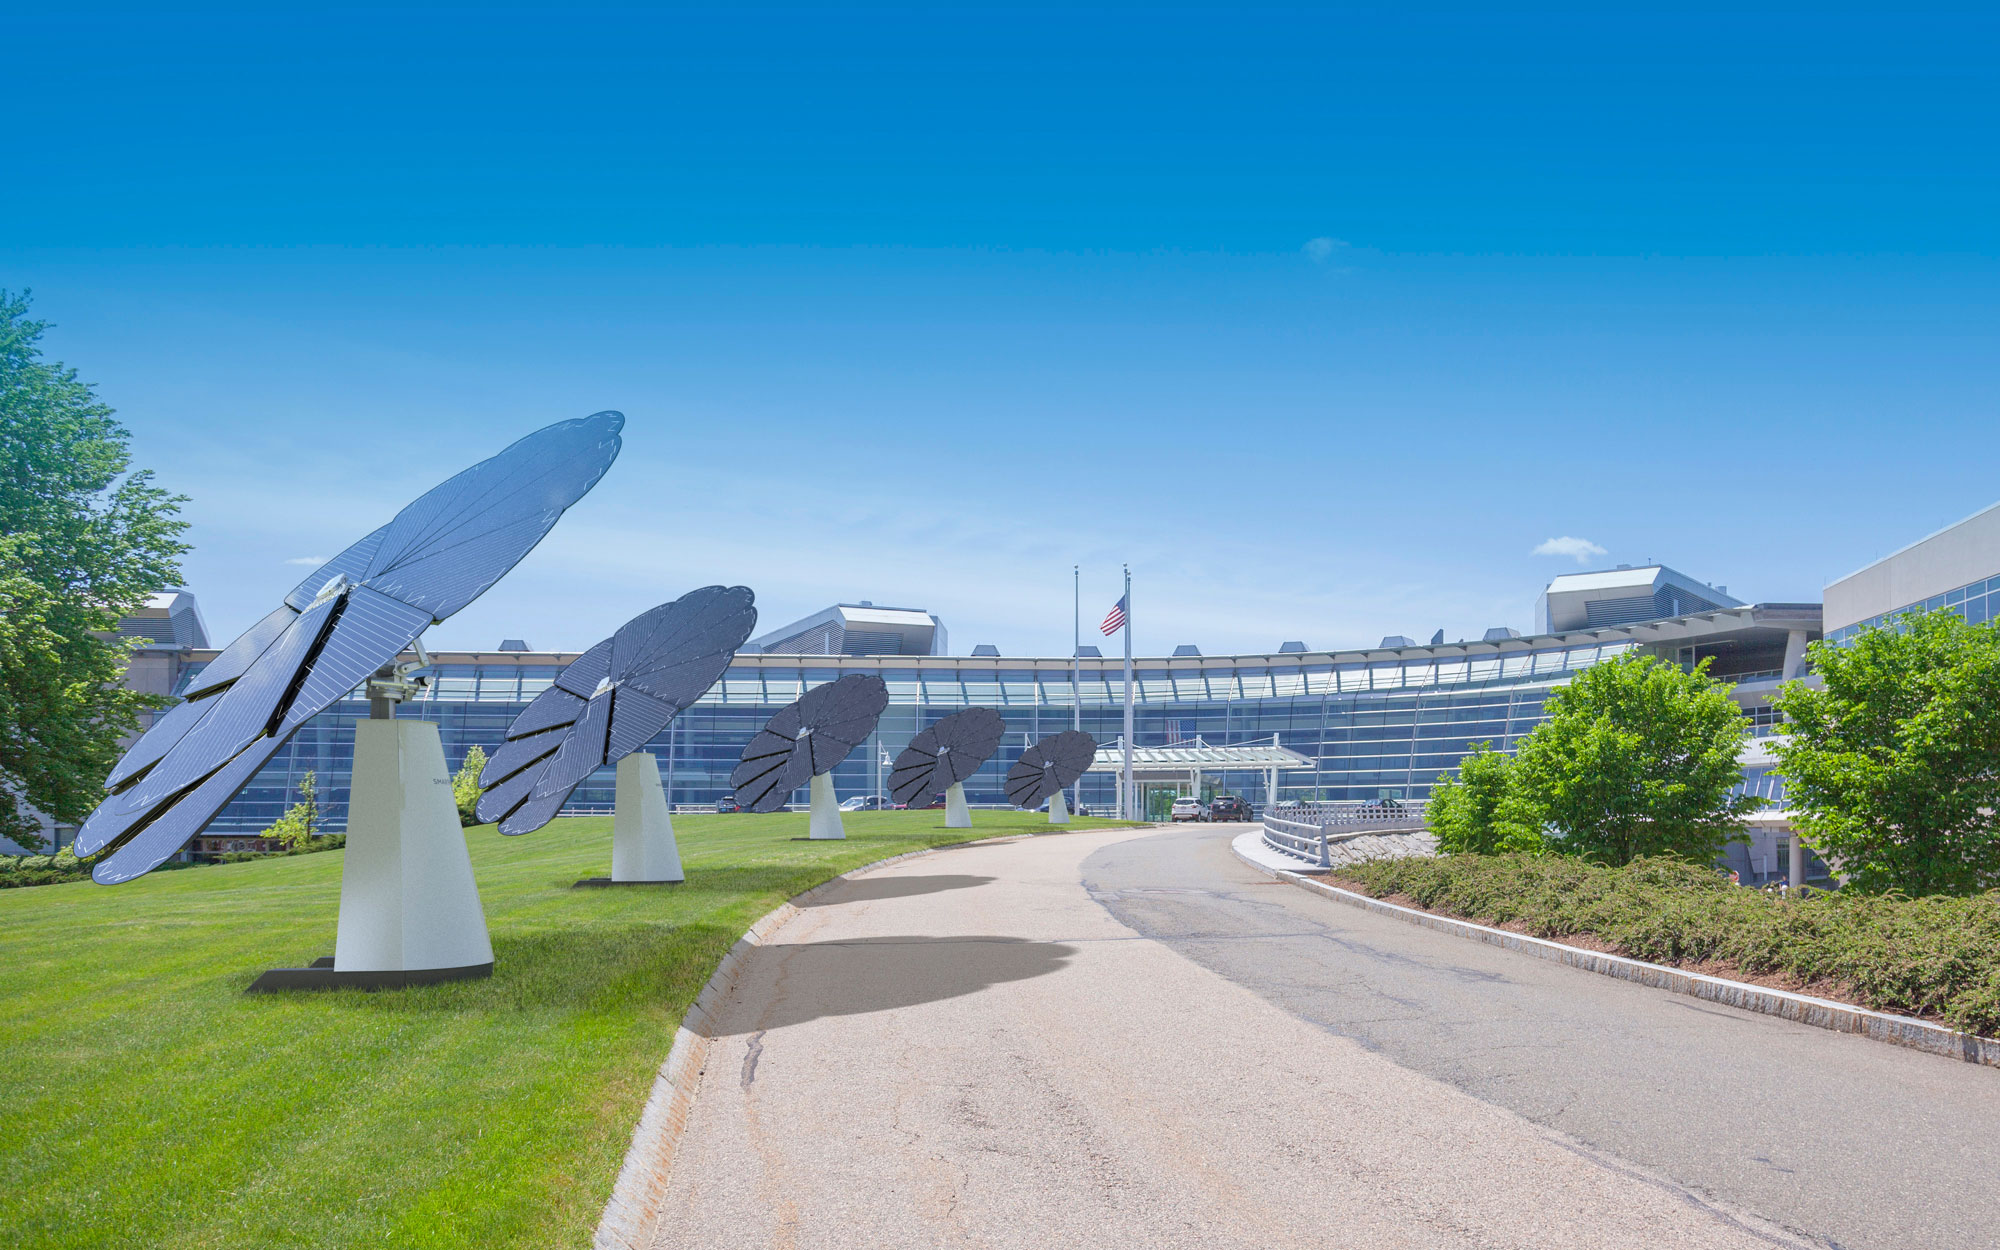 3D Rendering of Multiple SmartFlower Solar Panels Lining the Driveway of a Business